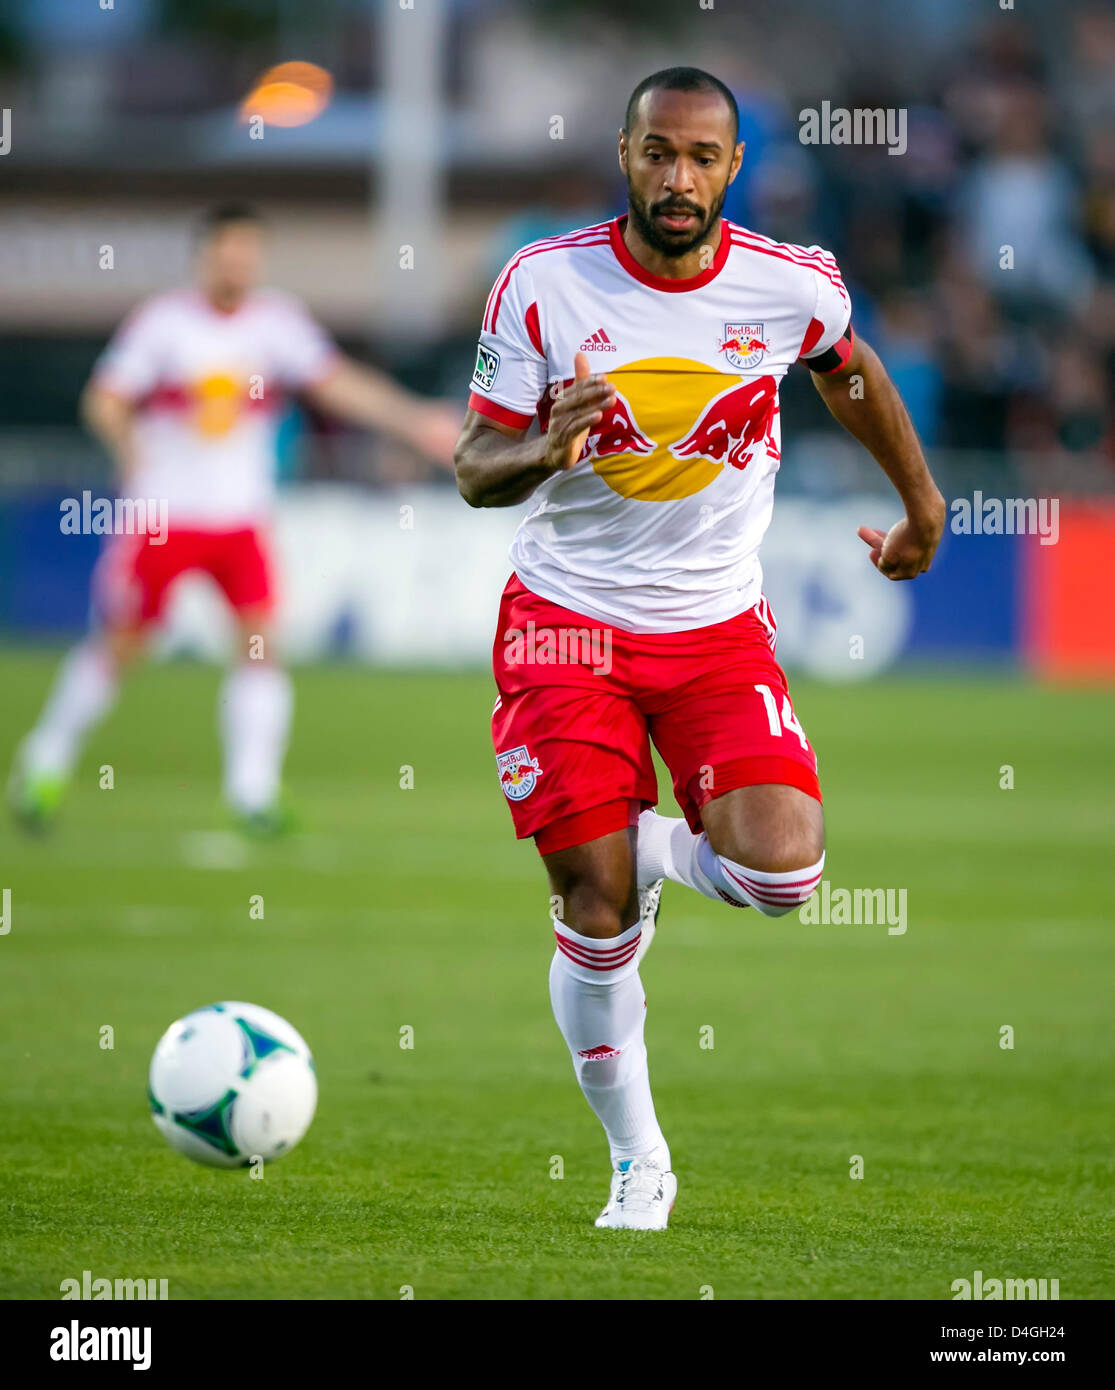 549fe03bc09 March 10, 2013: New York Red Bulls forward Thierry Henry (14) in action  during the MLS game between the New York Red Bulls and the San Jose  Earthquakes at ...